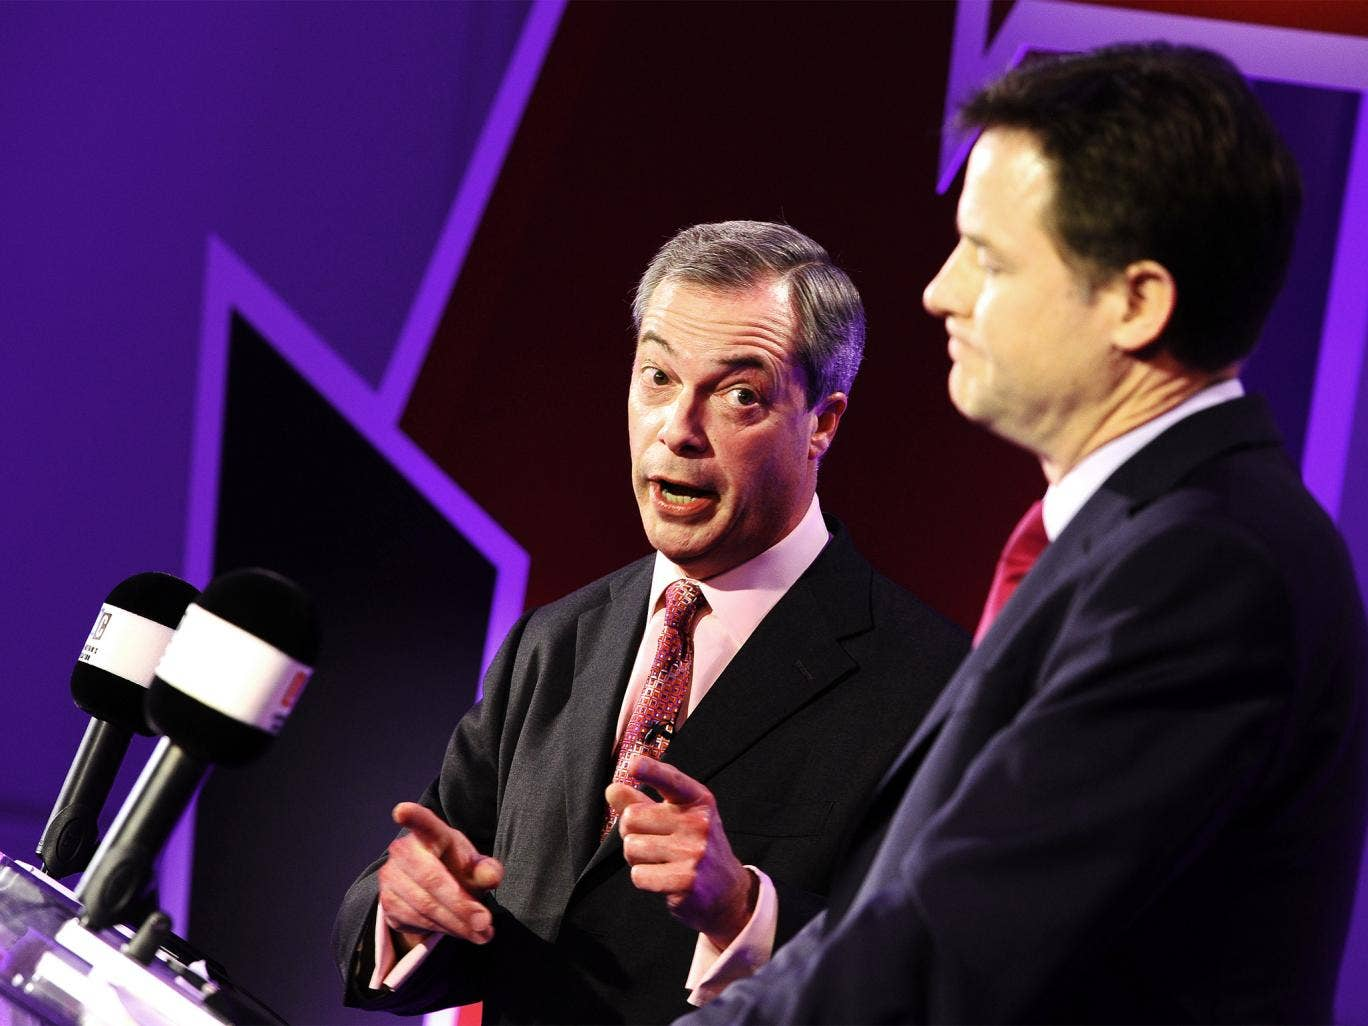 Nigel Farage and Nick Clegg take part in a debate over Britain's future in the European Union